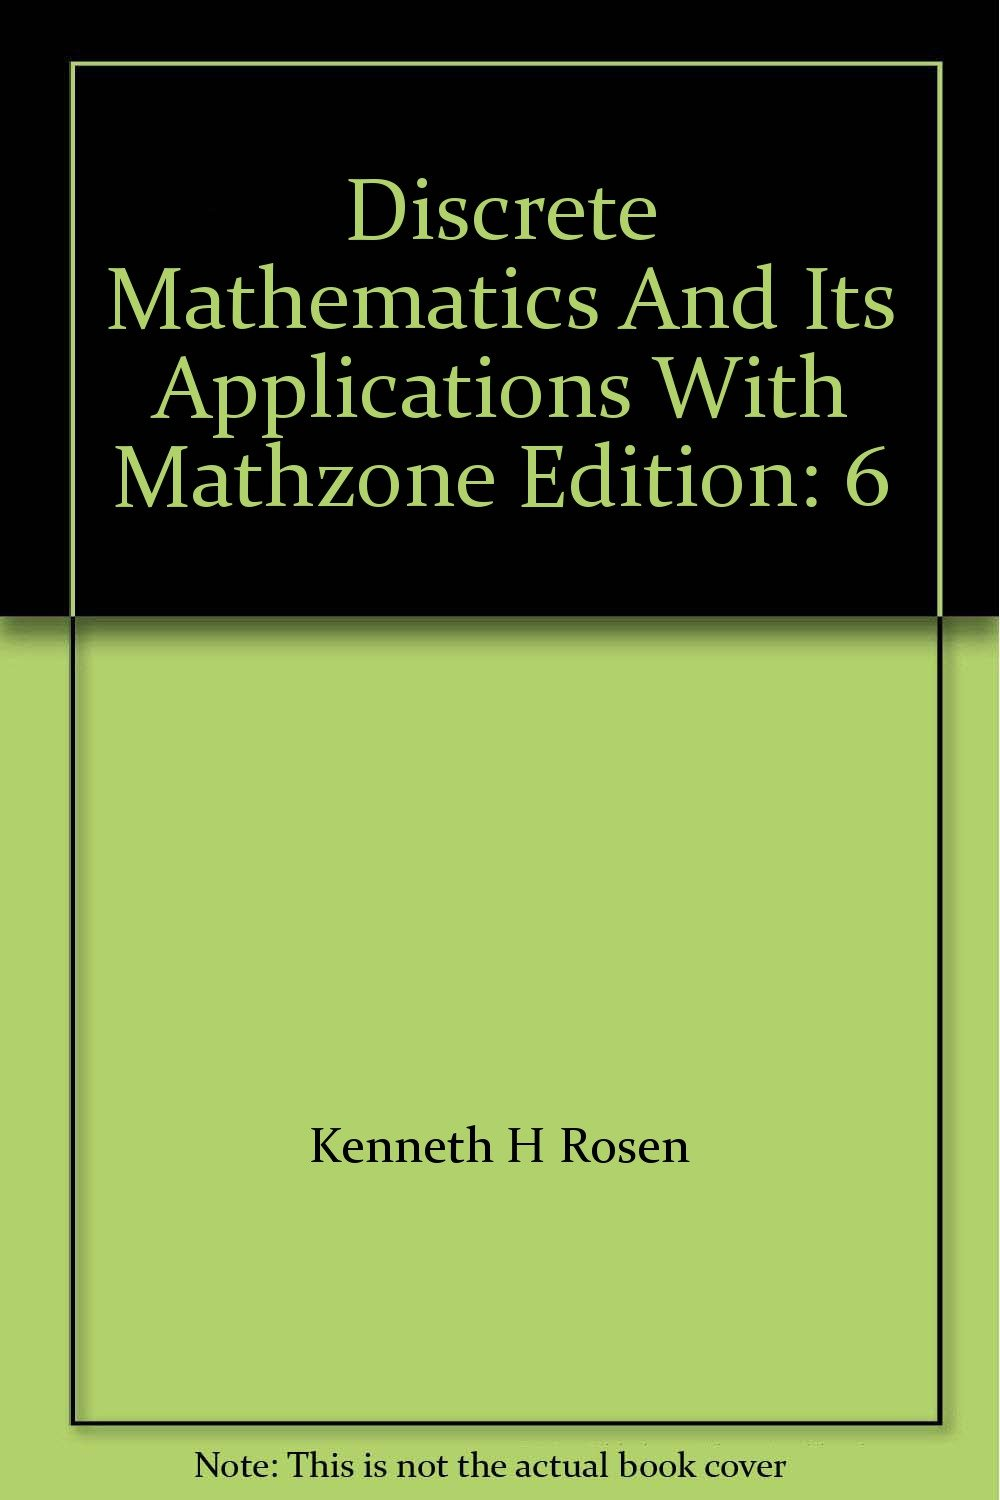 Discrete Mathematics And Its Applications With Mathzone Edition: 6: Kenneth  H Rosen: Amazon.com: Books